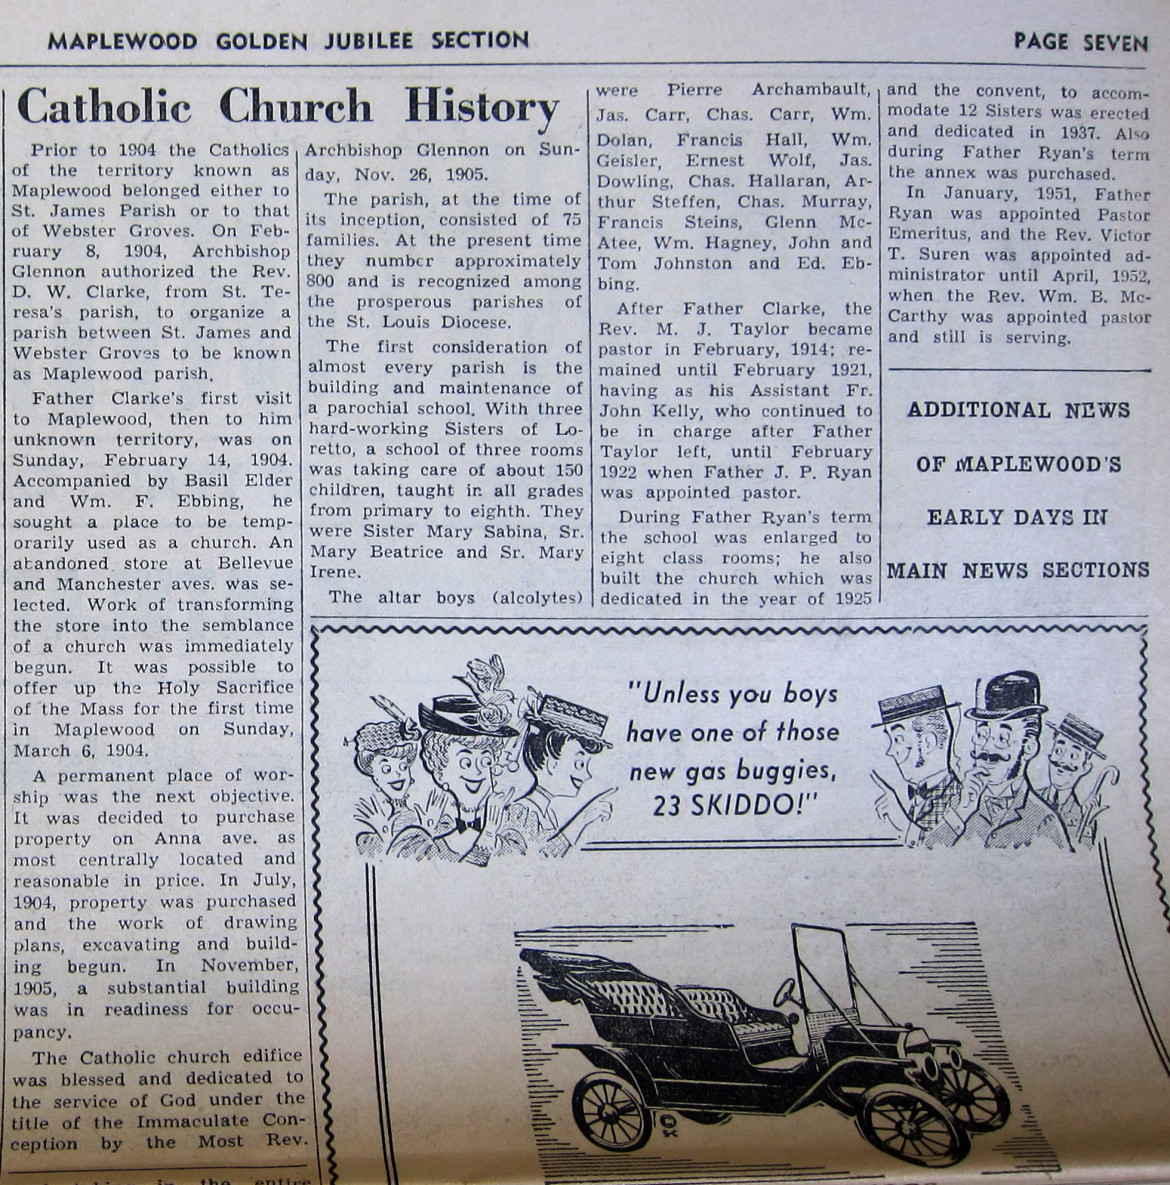 First a little history.  this article is from The Observer newspaper, Sept. 10, 1958.  This edition featured the Maplewood's 50th anniversary called the Golden Jubilee.  Courtesy of the Maplewood Public Library.